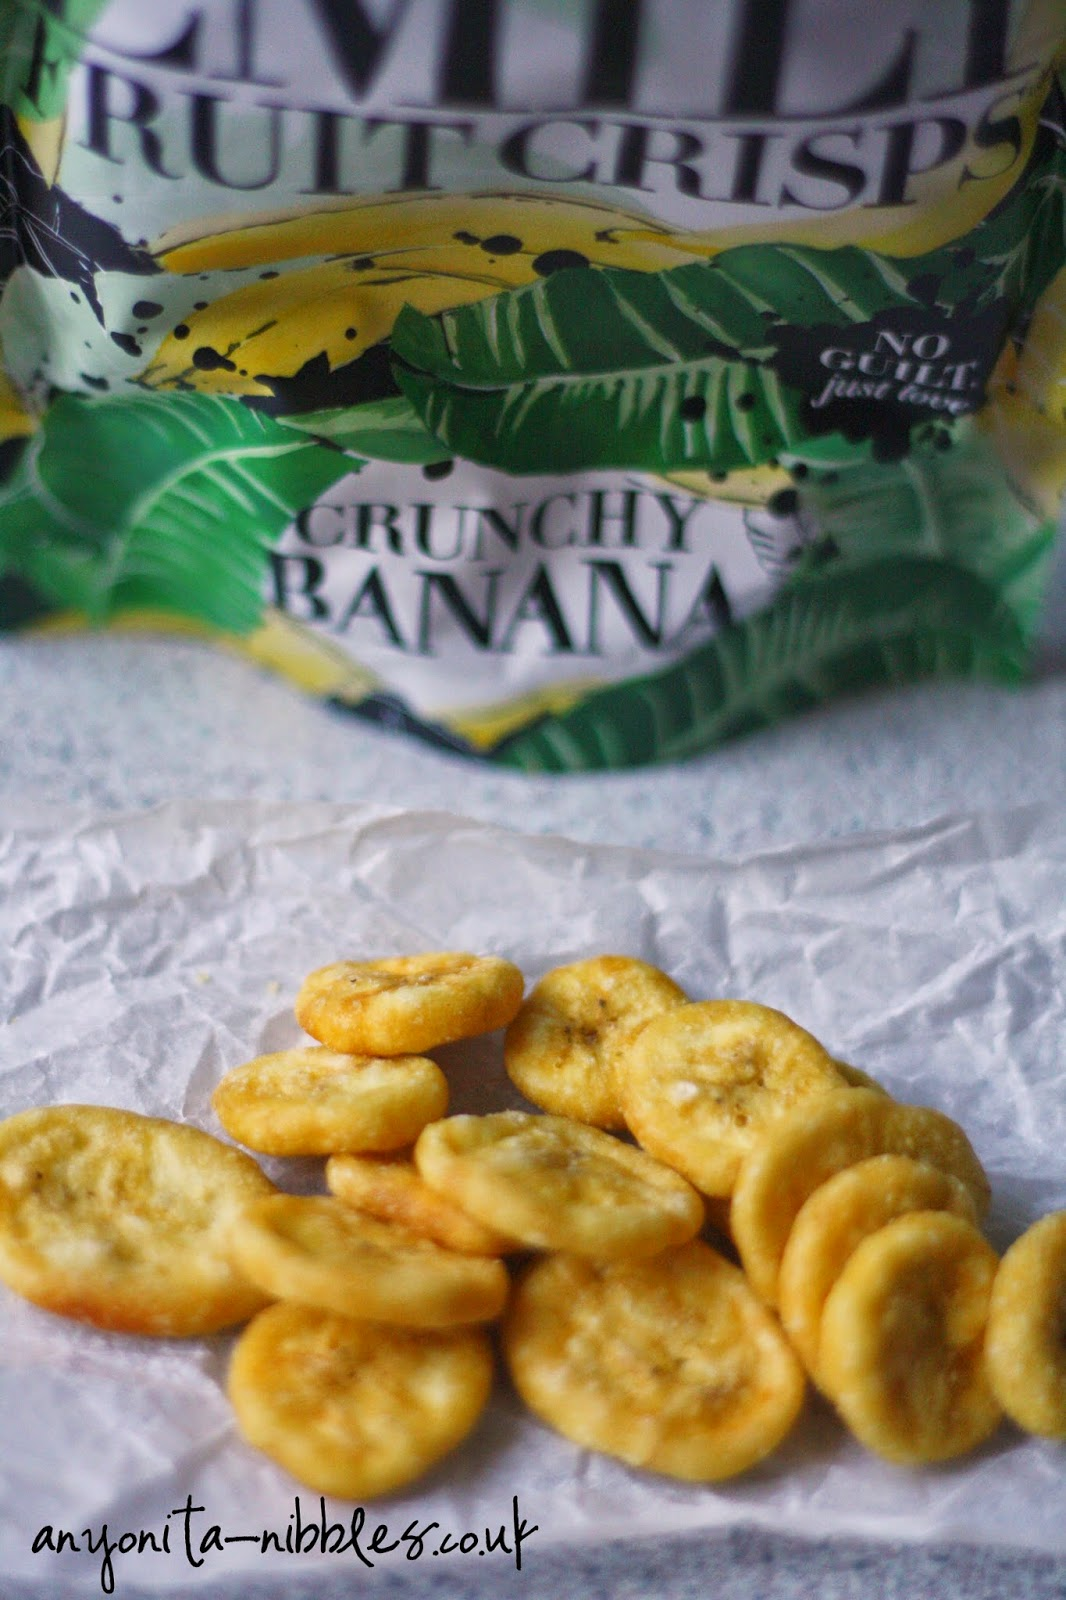 Emily Fruit Crisps Crunchy Banana by Anyonita-nibbles.co,.uk